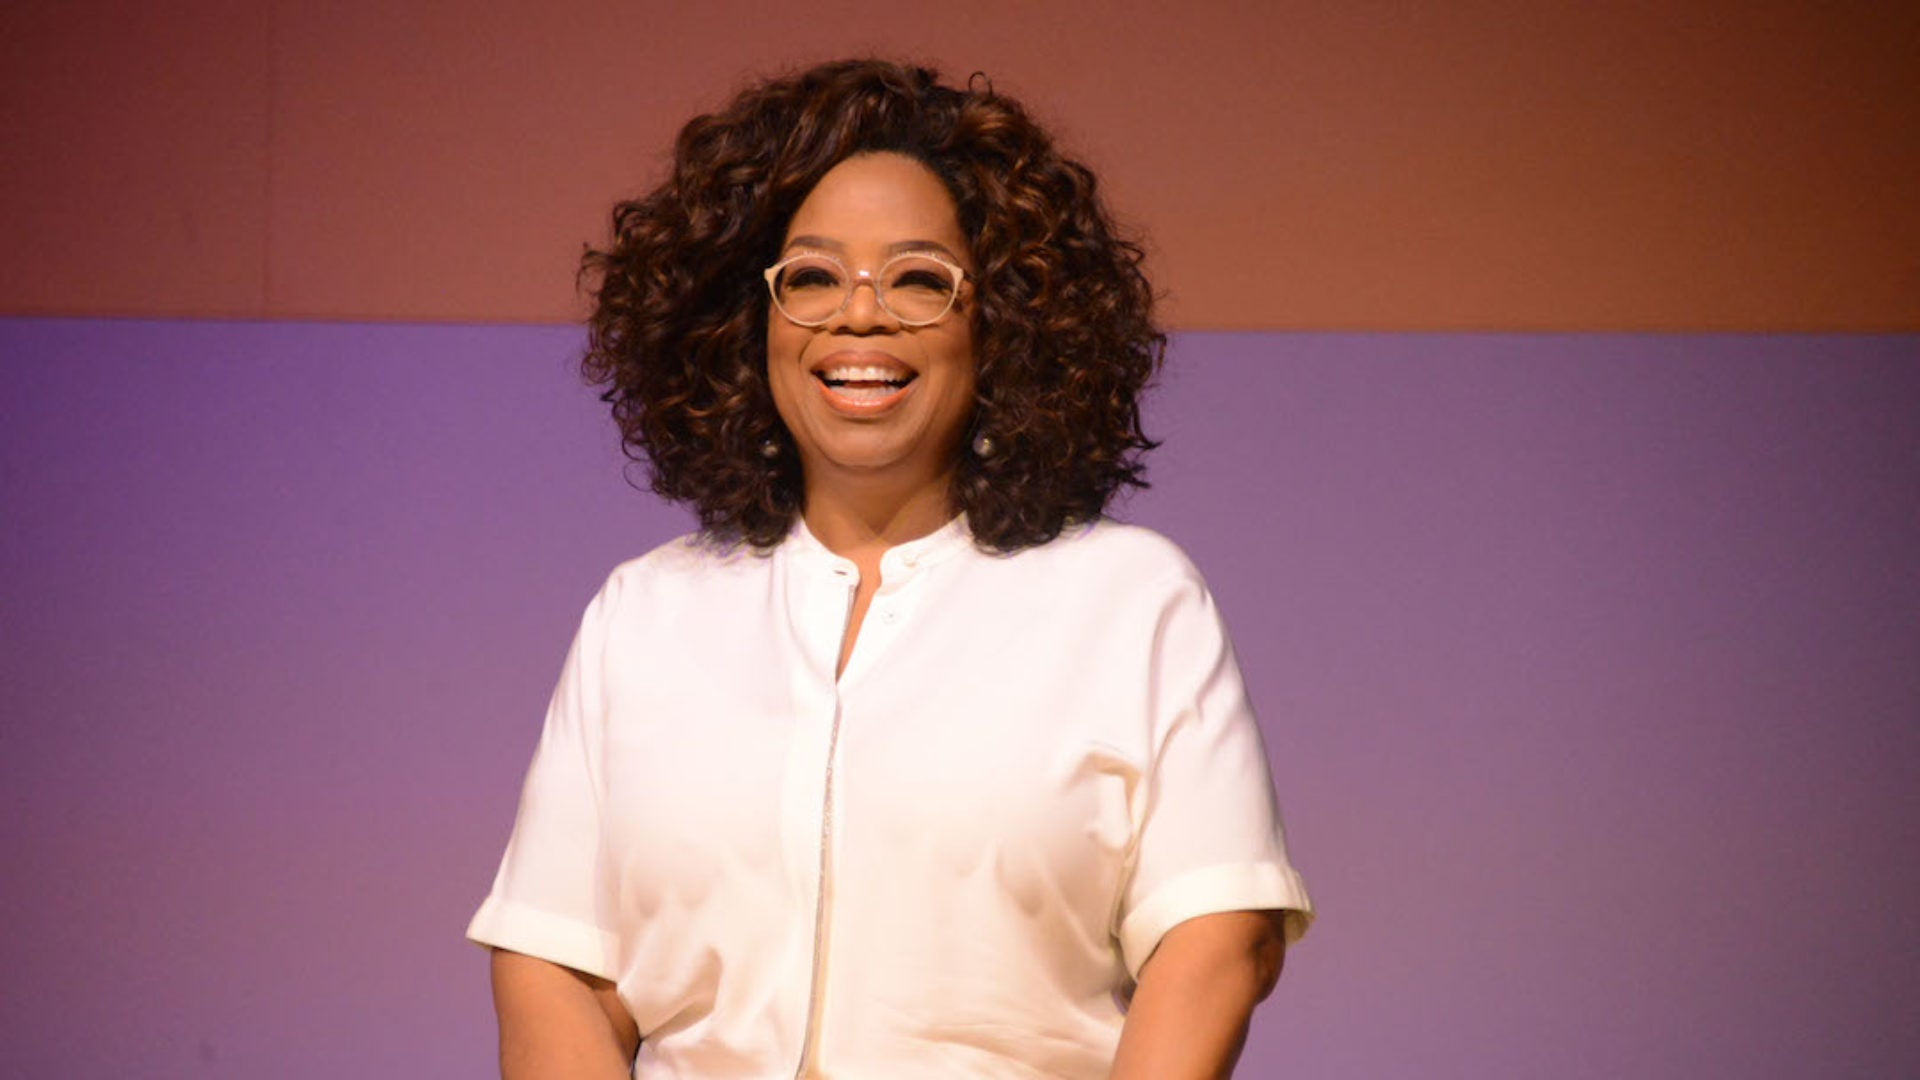 Oprah Winfrey buys iPhone for Nigerian boy to replace his broken phone